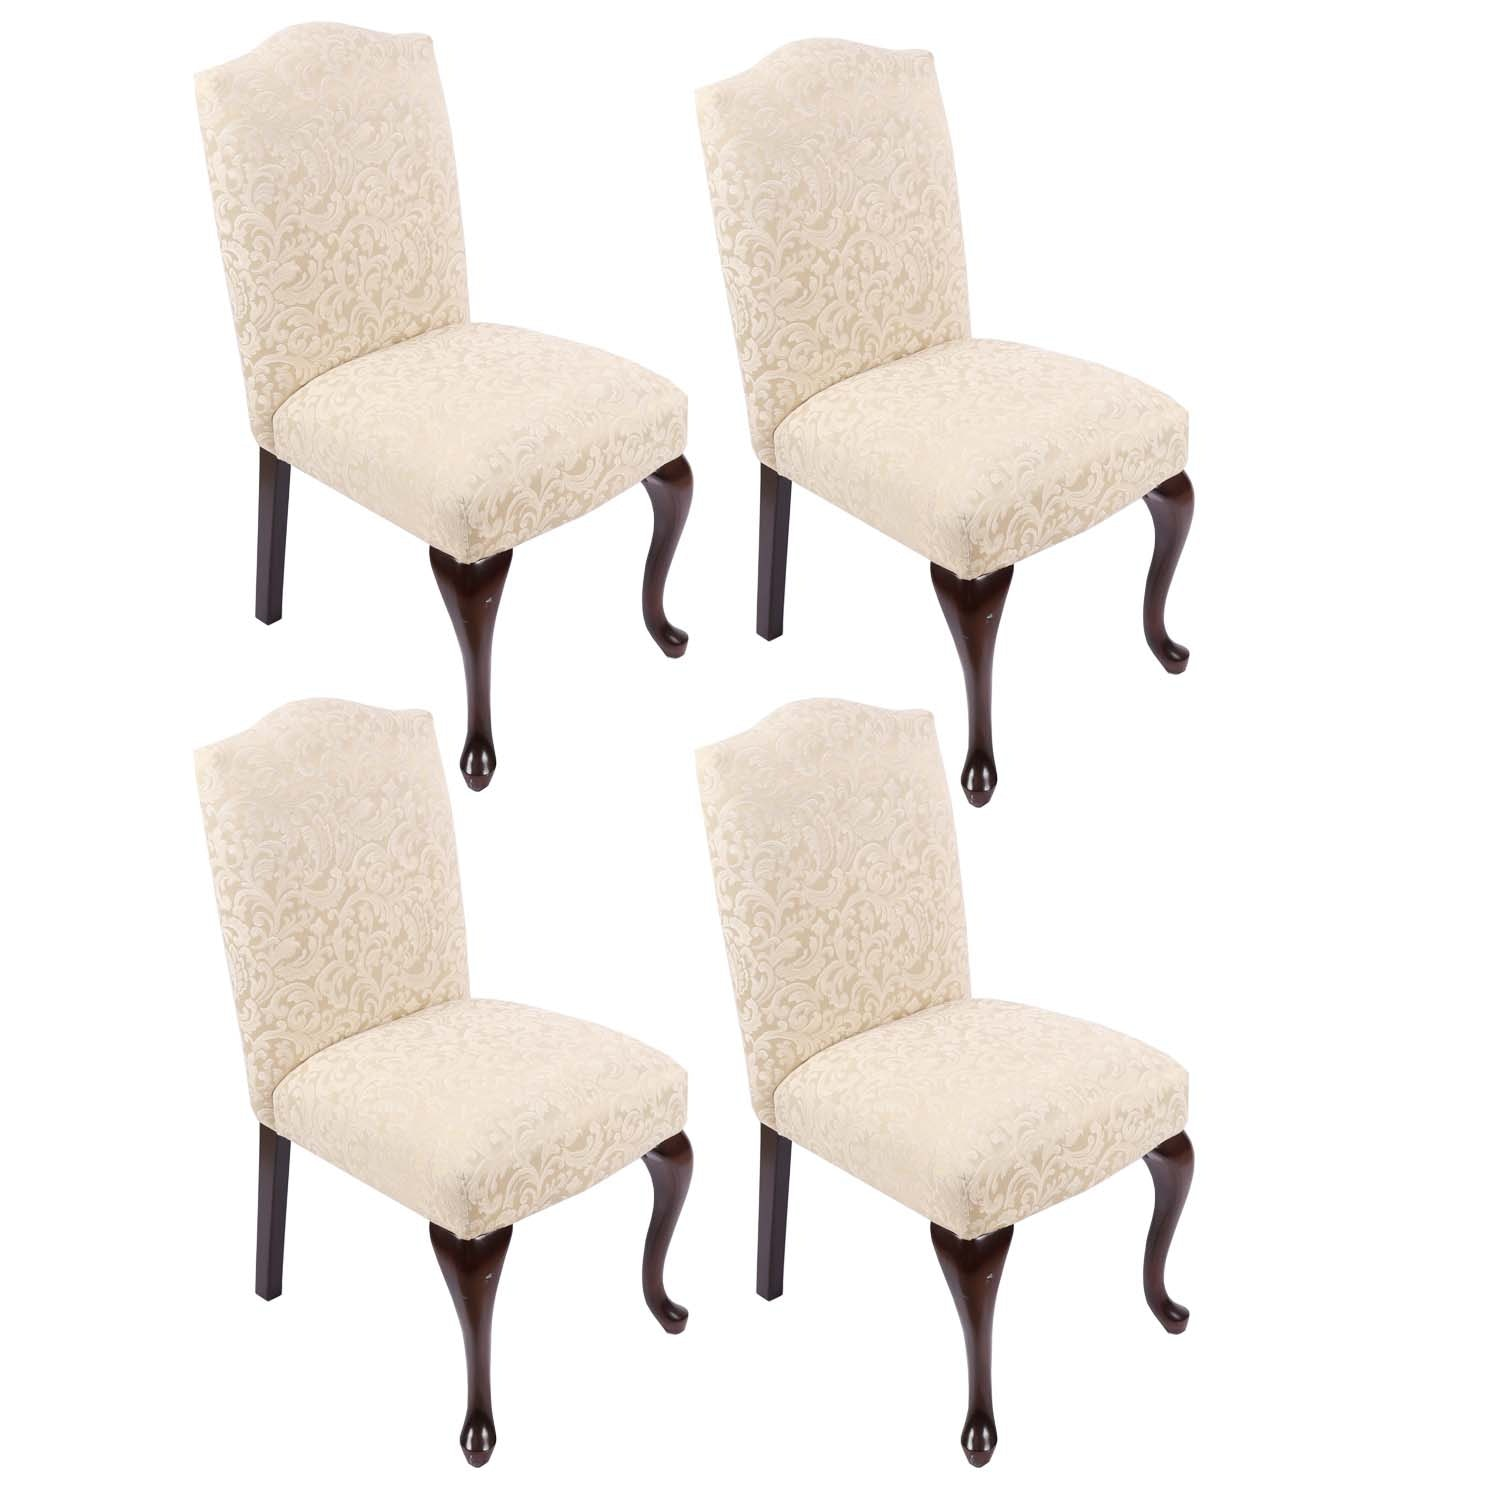 Charmant Set Of 4 Bombay Company Dining Chairs ...